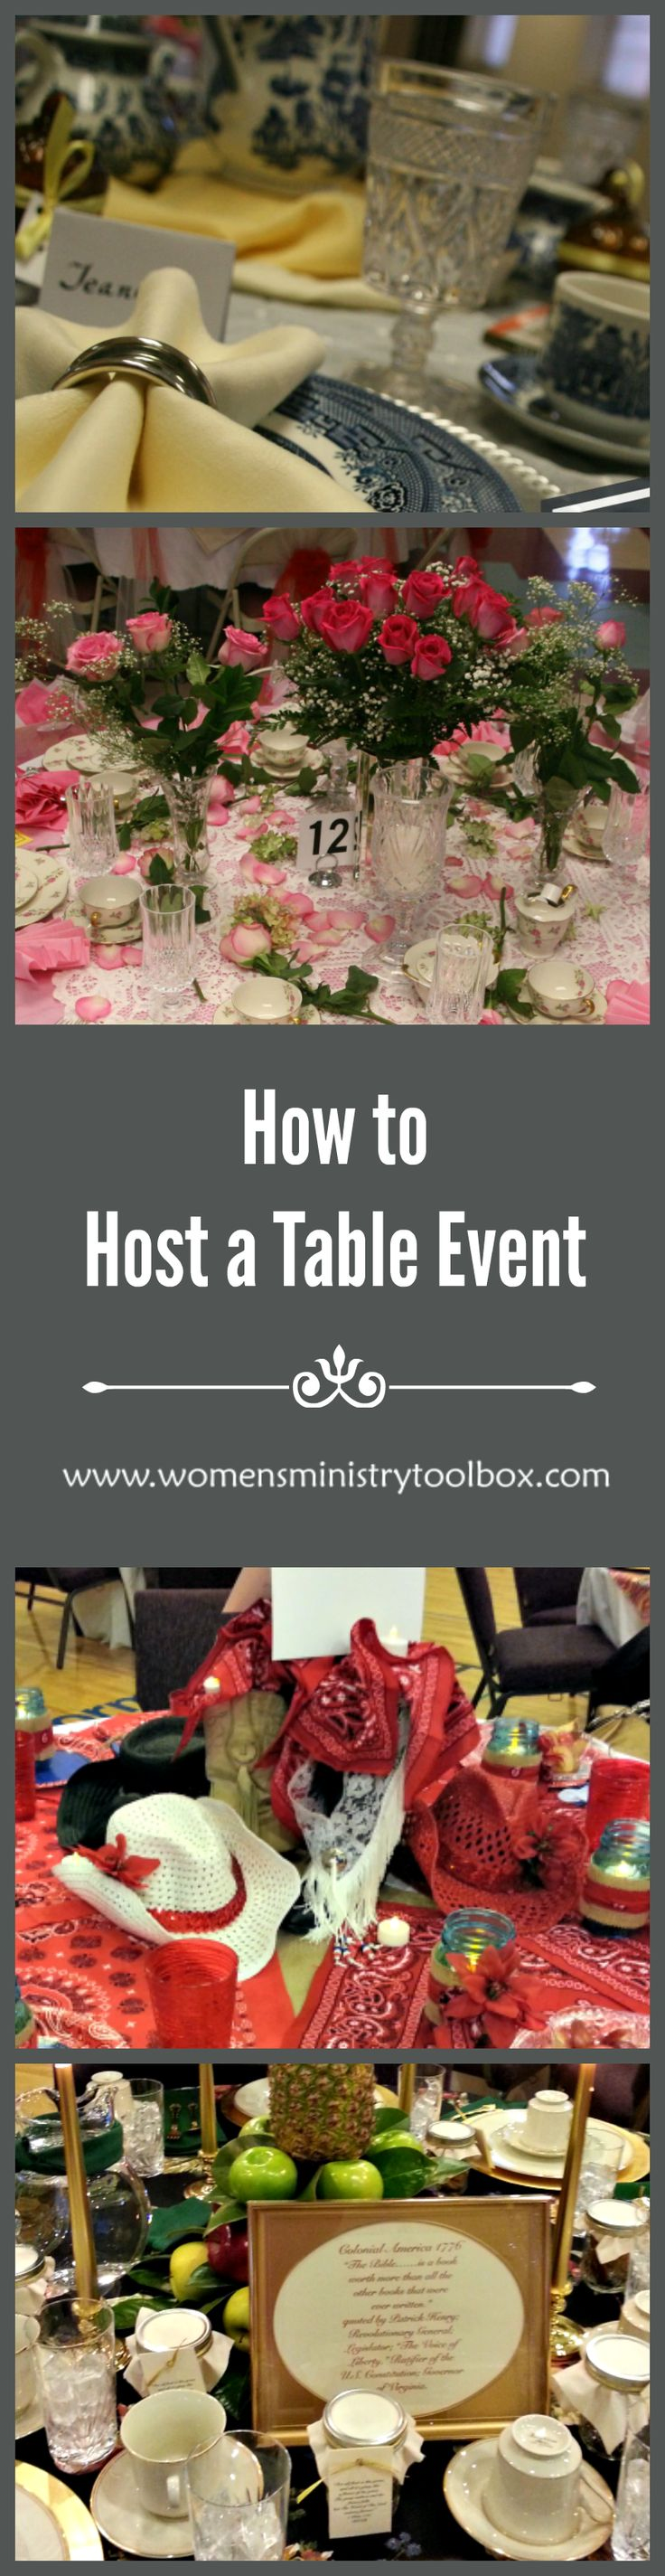 How to Host a Table Event - Includes décor ideas, planning timeline, and a detailed list of teams needed. Make sure your table event goes off without a hitch! From Women's Ministry Toolbox.